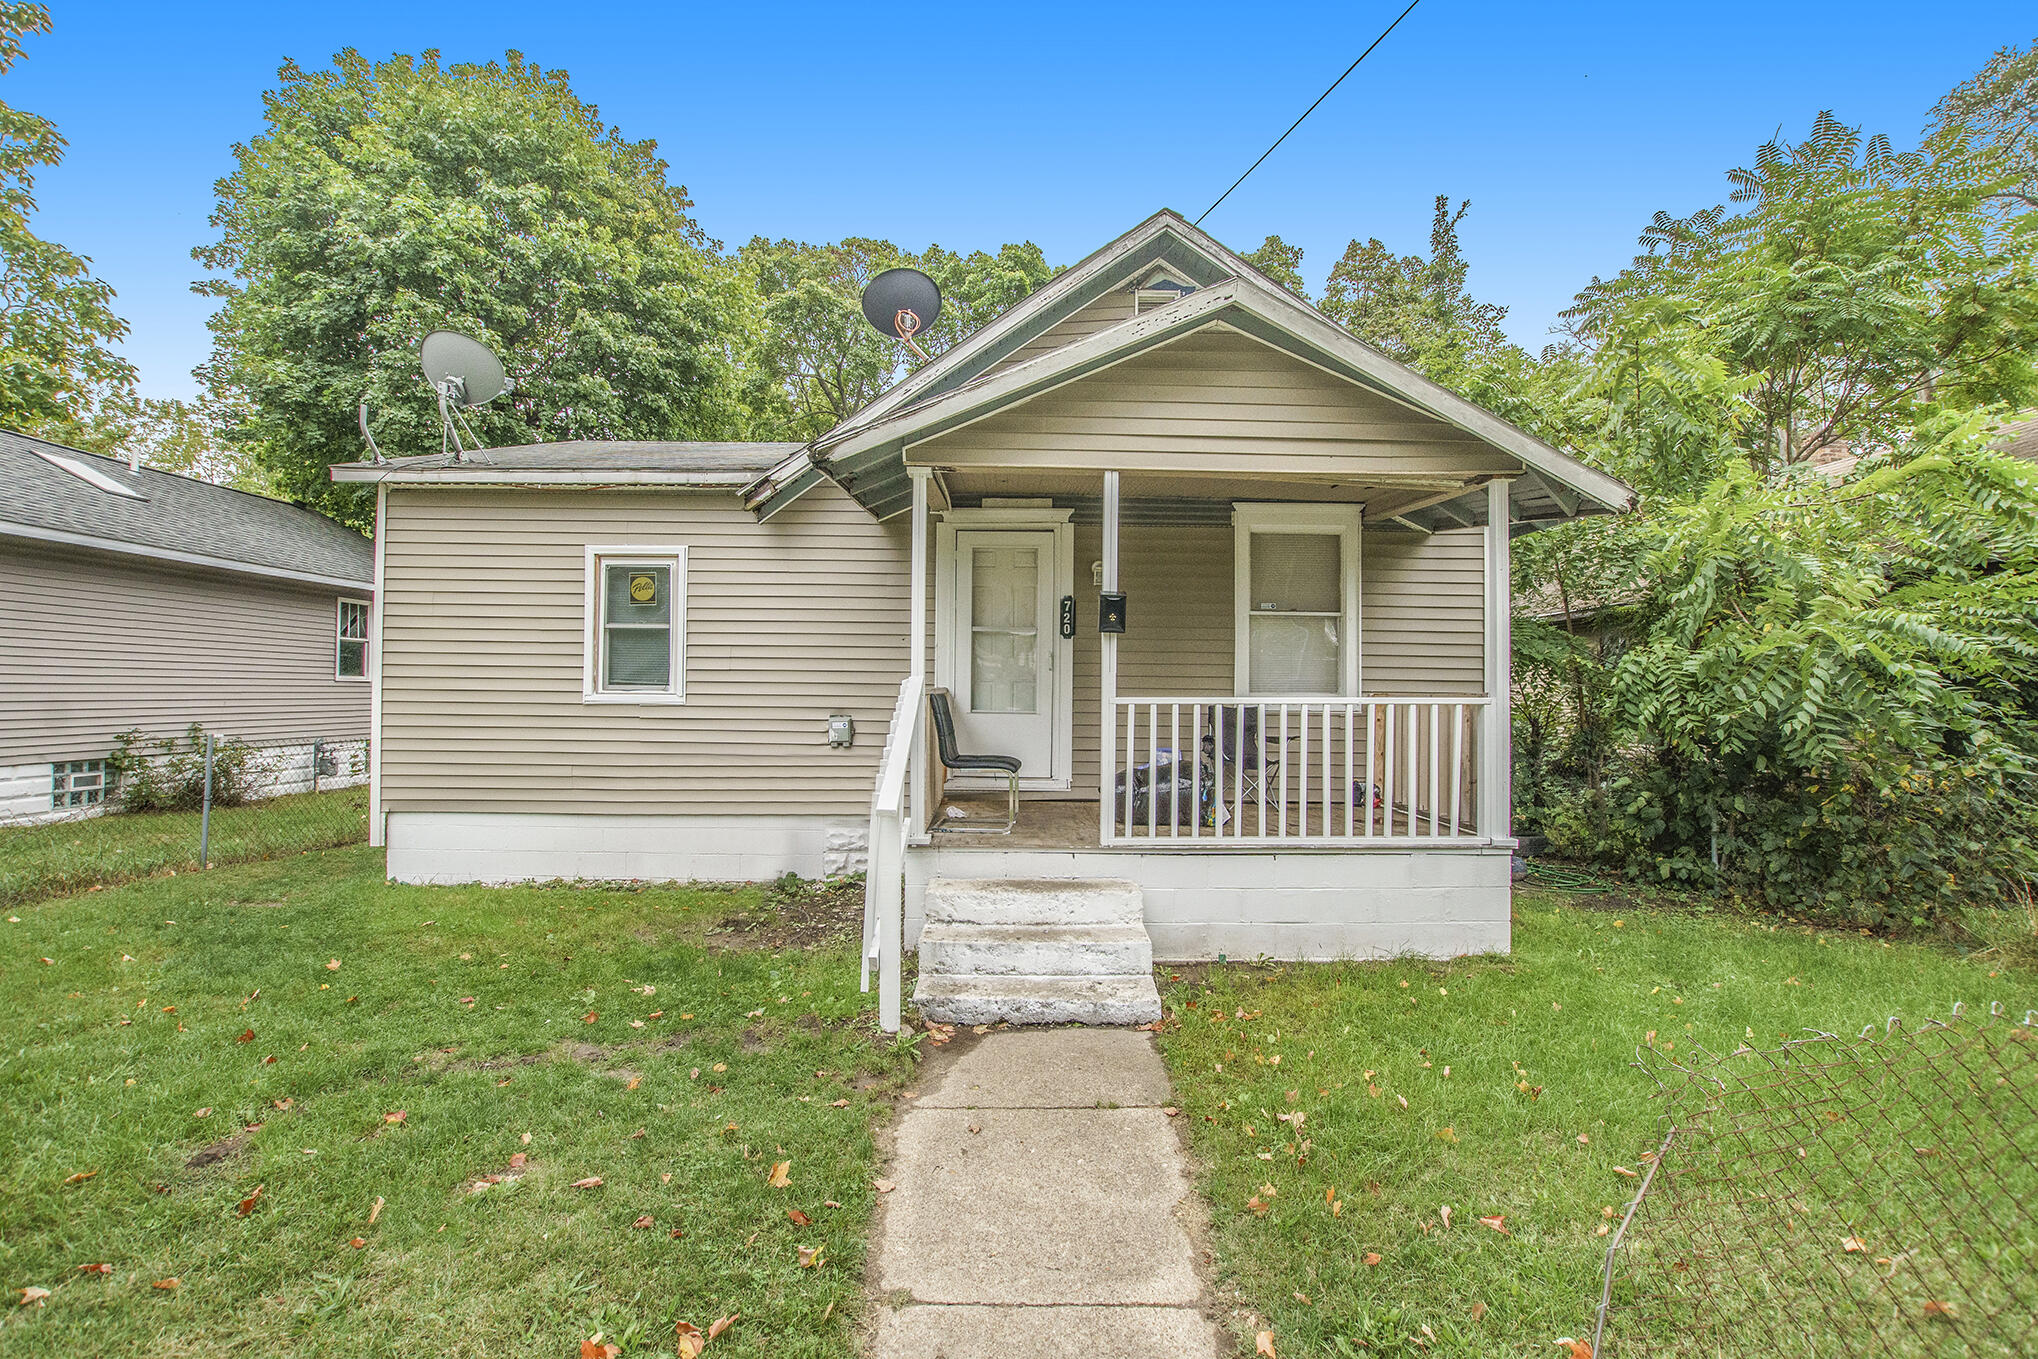 4-Bedroom House In District 2